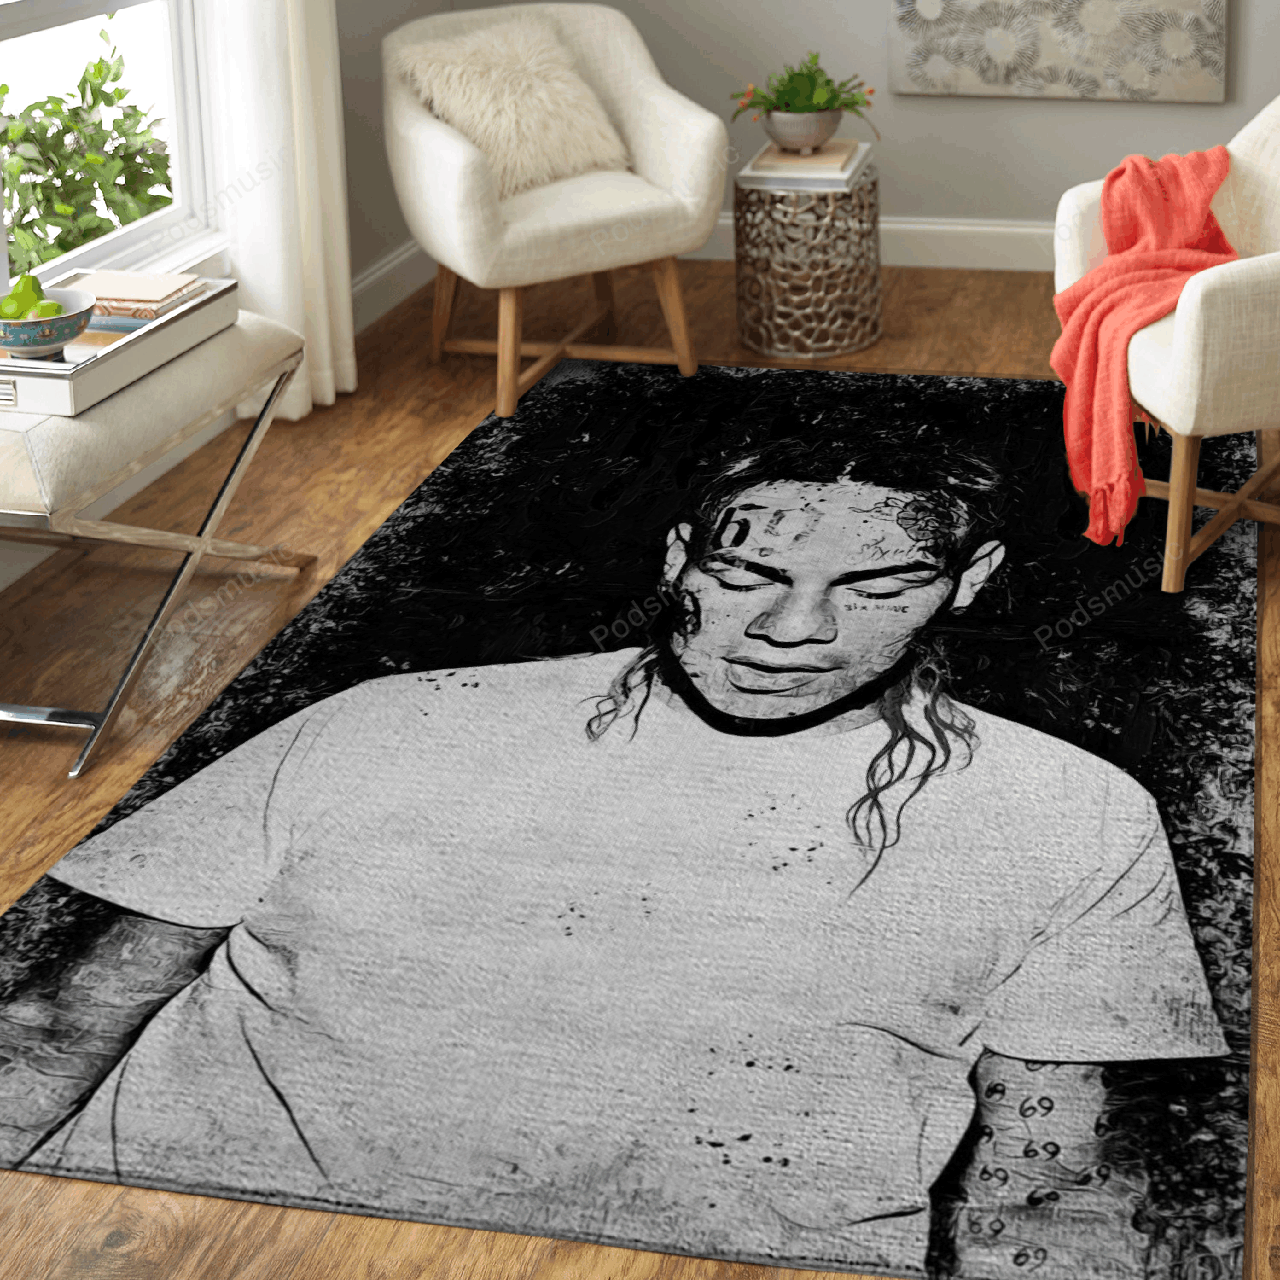 Music Monochrome Art For Fans Area Rug Living Room Carpet Floor Decor